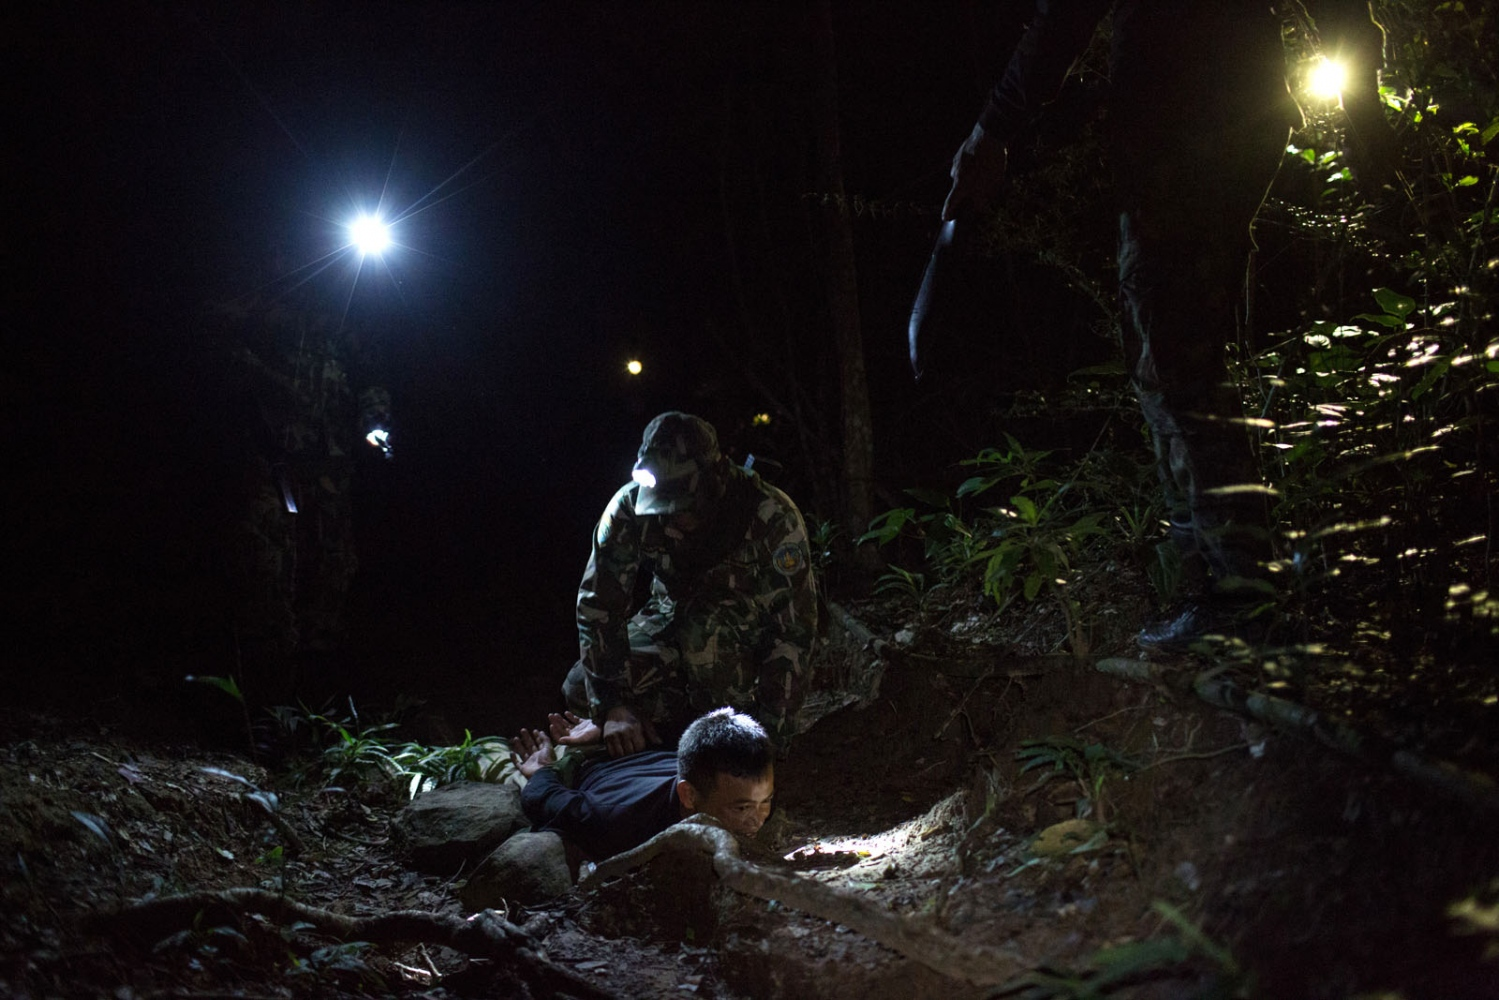 New recruits and those on a refresher course take part in training exercises at night during a 4 day forest ranger training course in Ta Praya National Park. This scenario trains them in ambushing loggers at night. Ta Praya National Park, Sa Kaew Province - September 2018